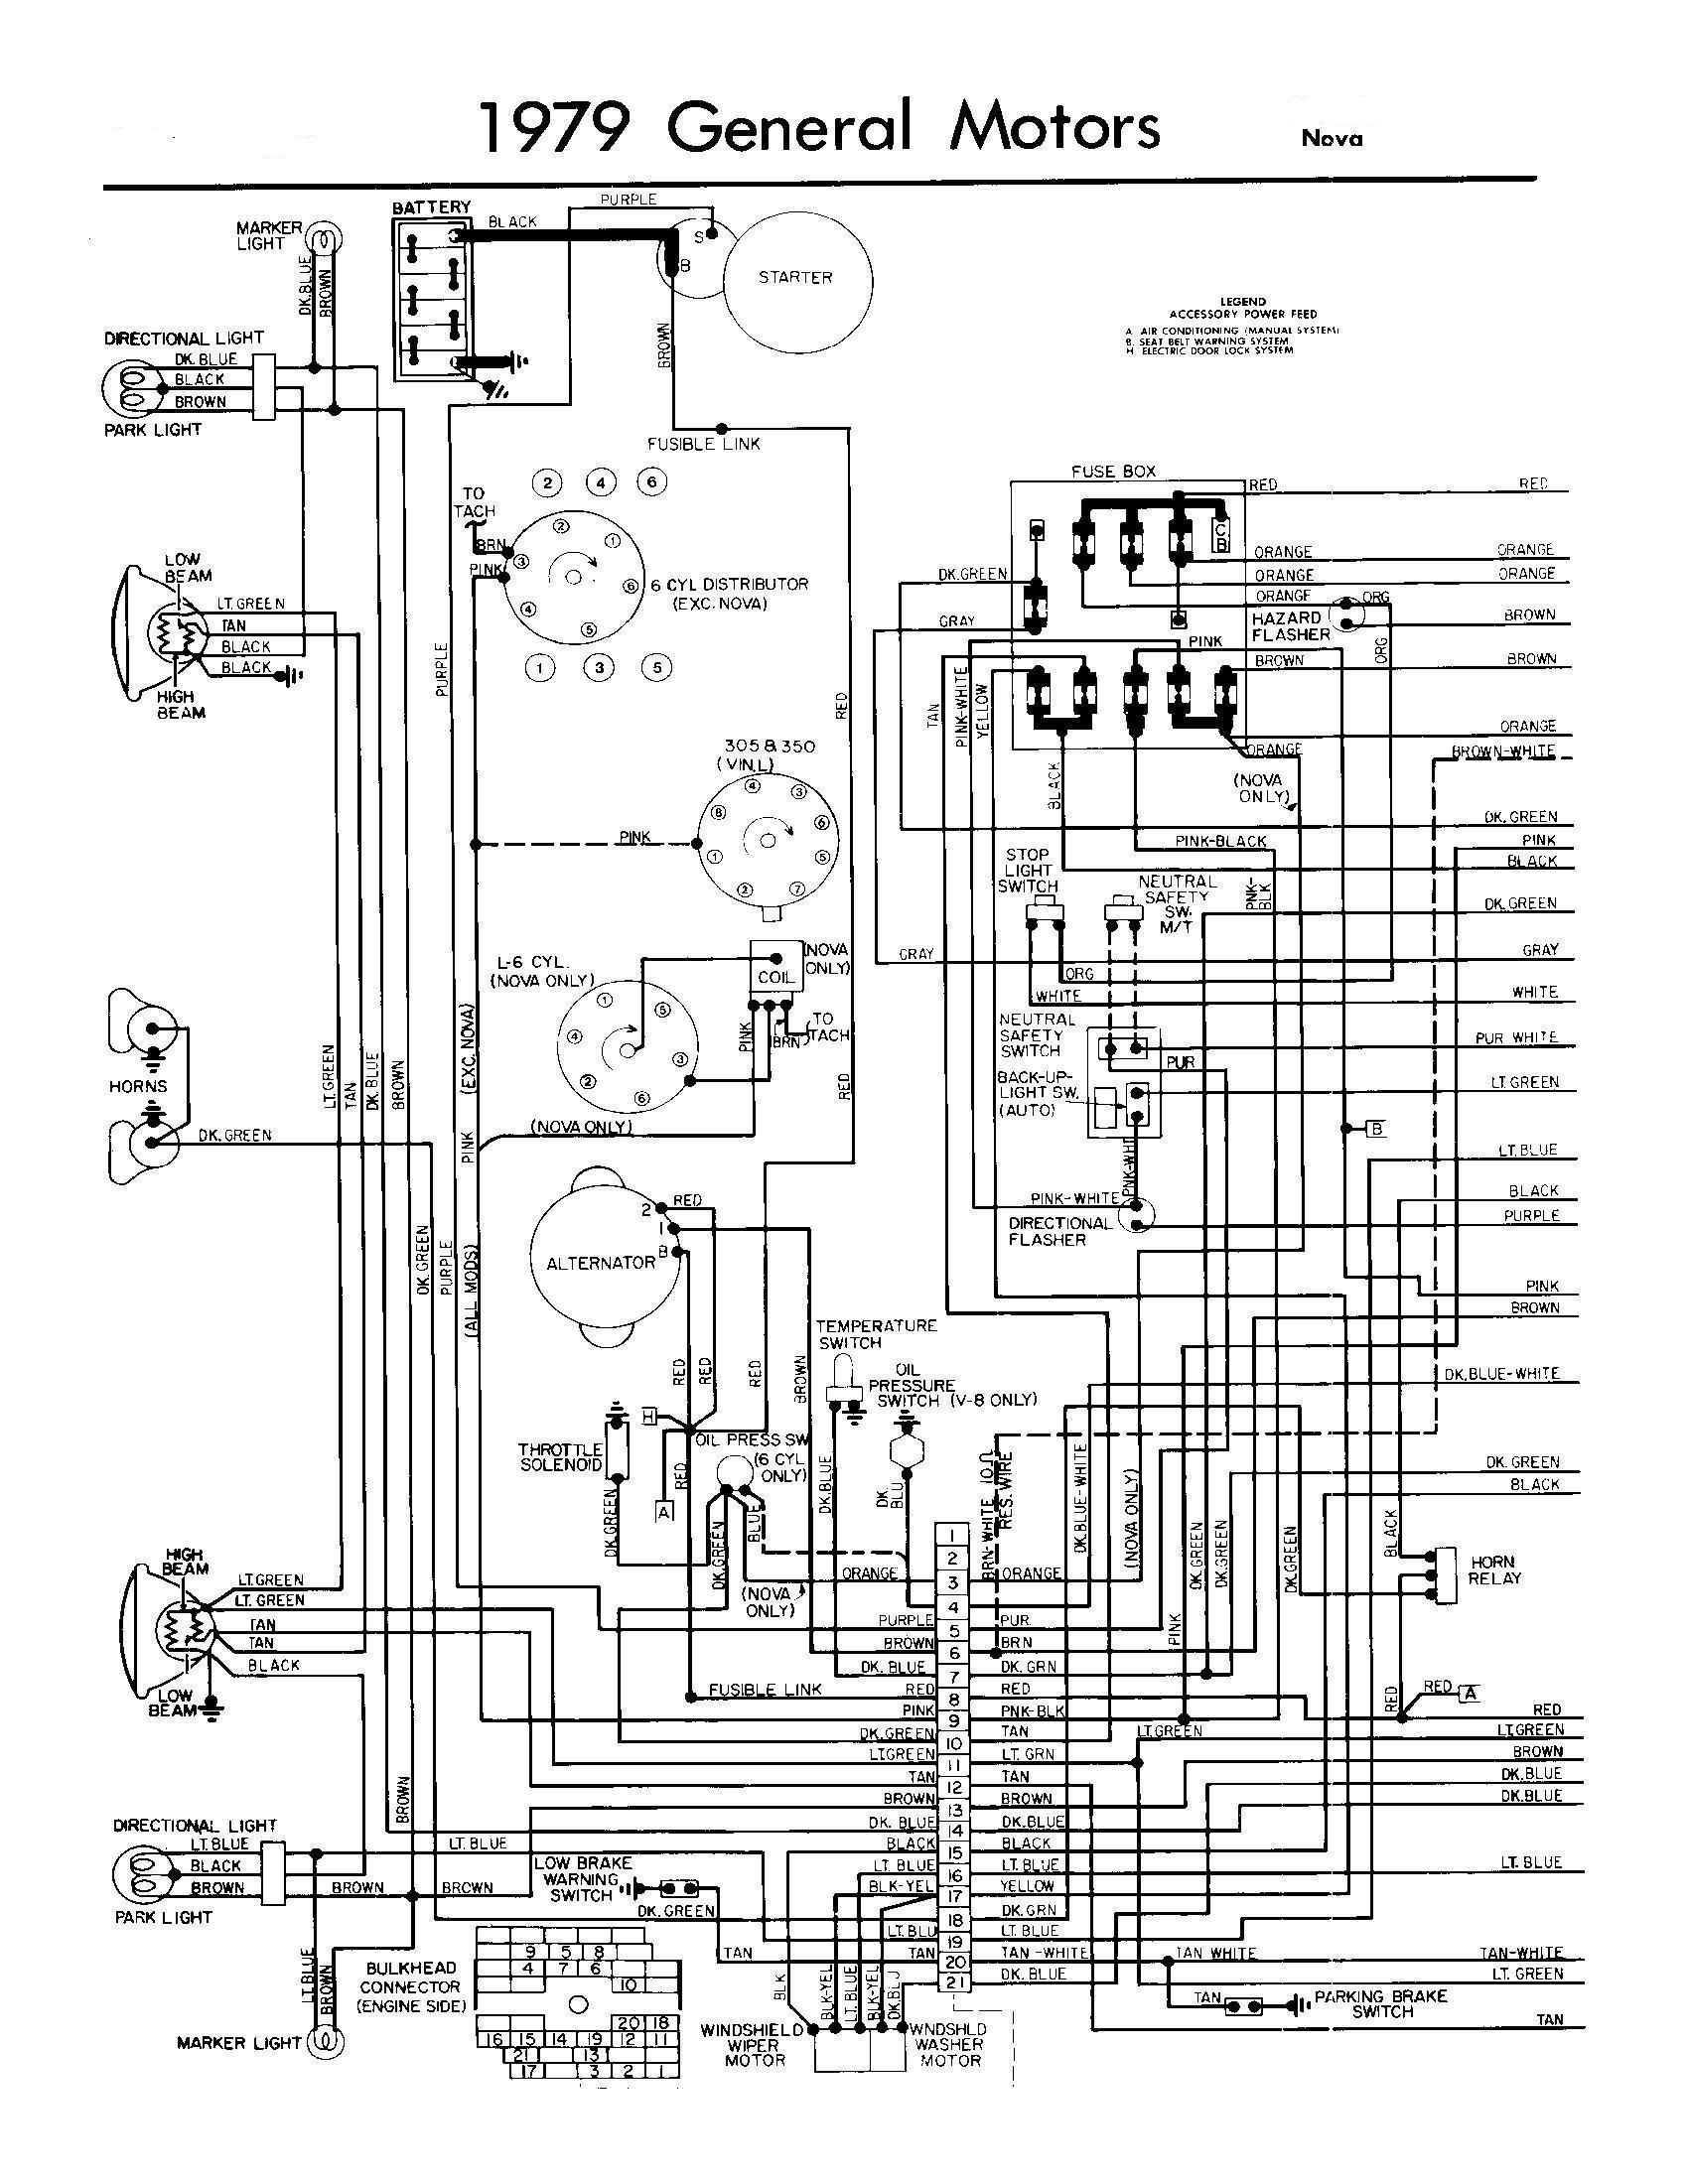 1993 gmc sierra wiring diagram 1975 gmc truck wiring diagrams e2 wiring diagram  1975 gmc truck wiring diagrams e2